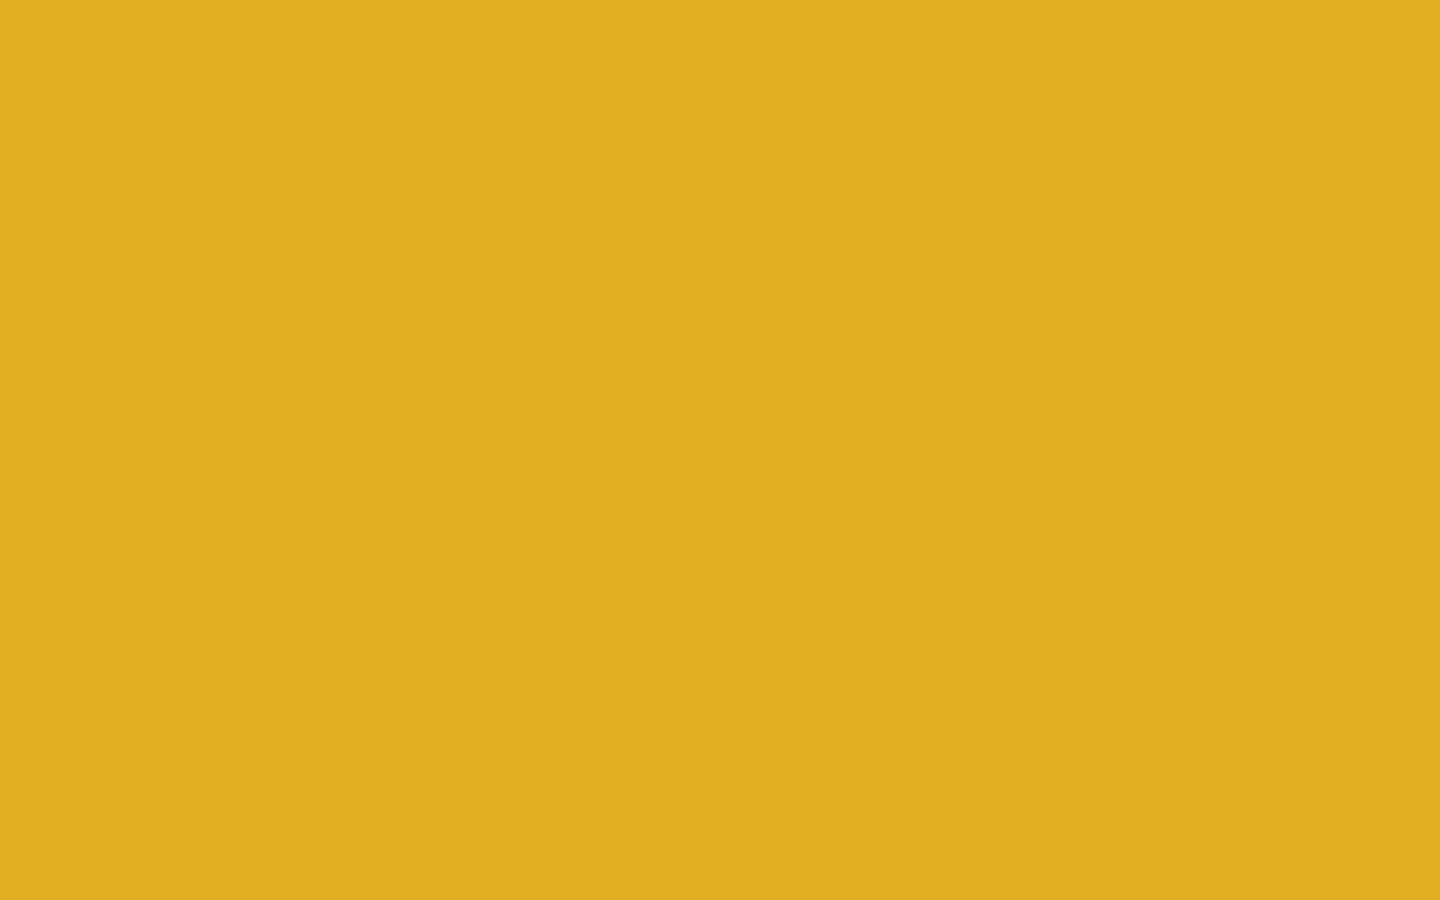 1440x900 Urobilin Solid Color Background